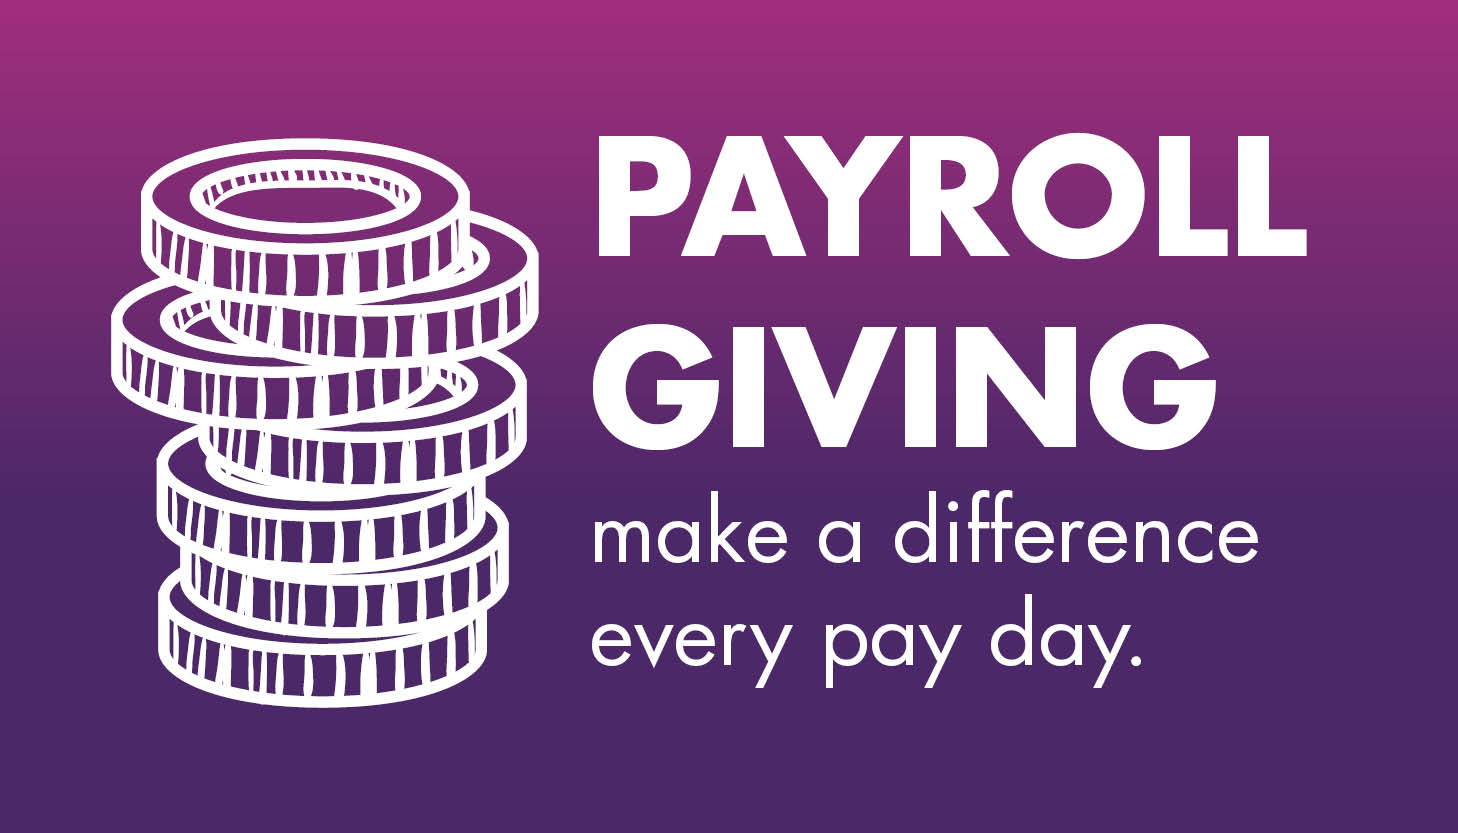 Payroll Giving 700 x 400 web image